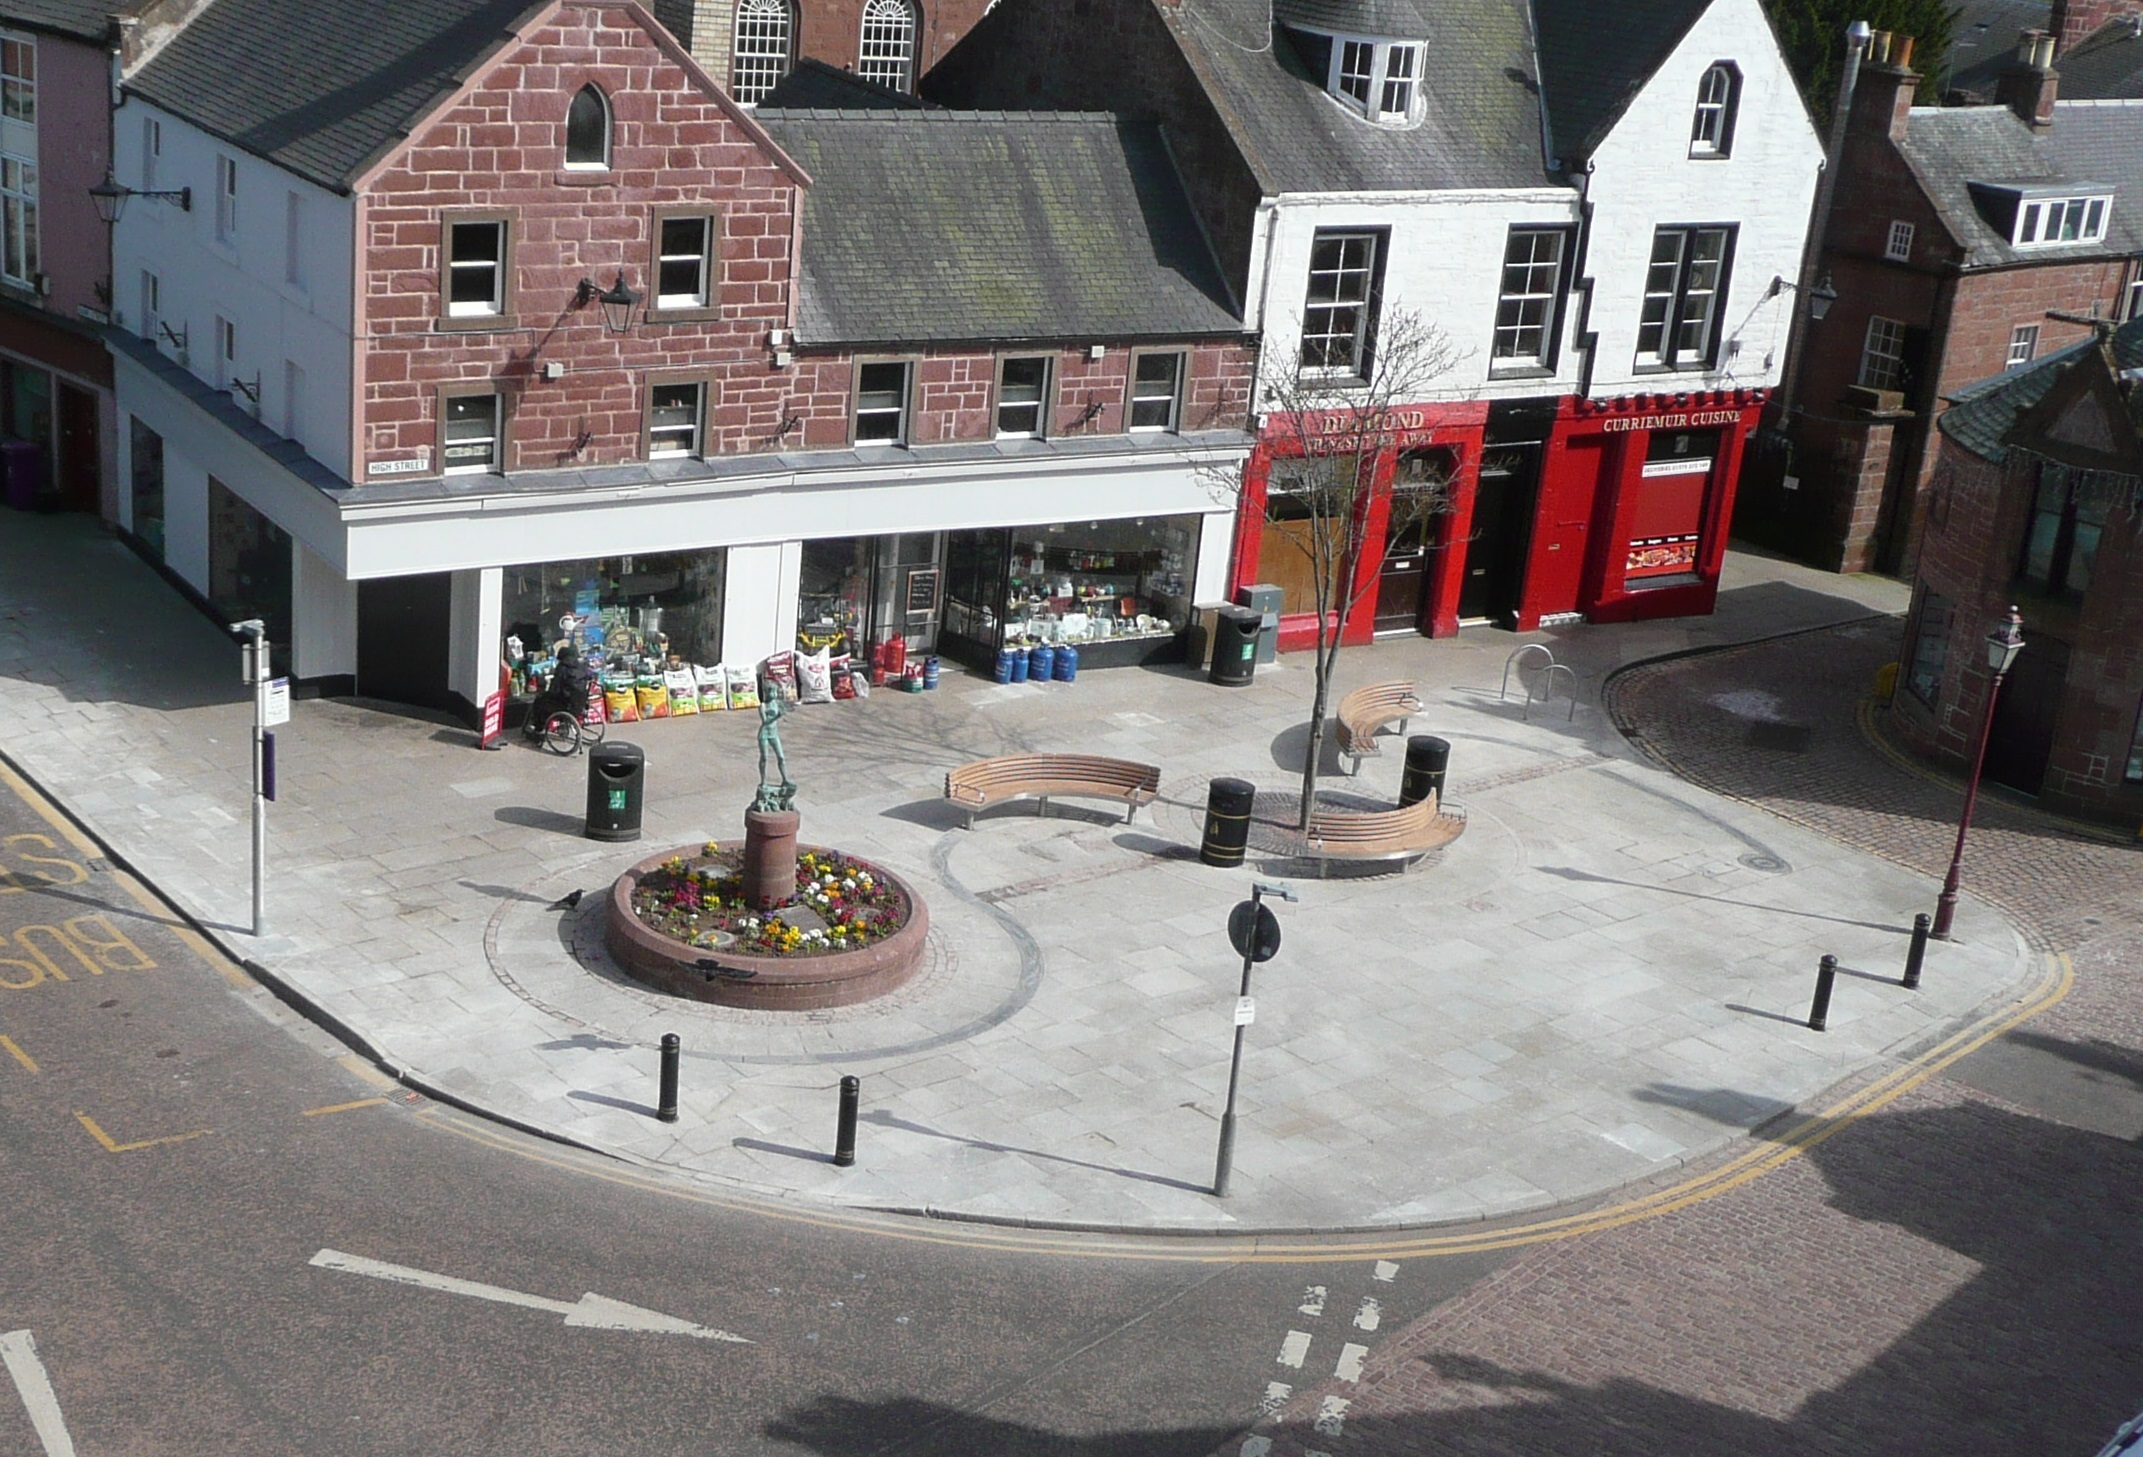 Kirriemuir town centre.